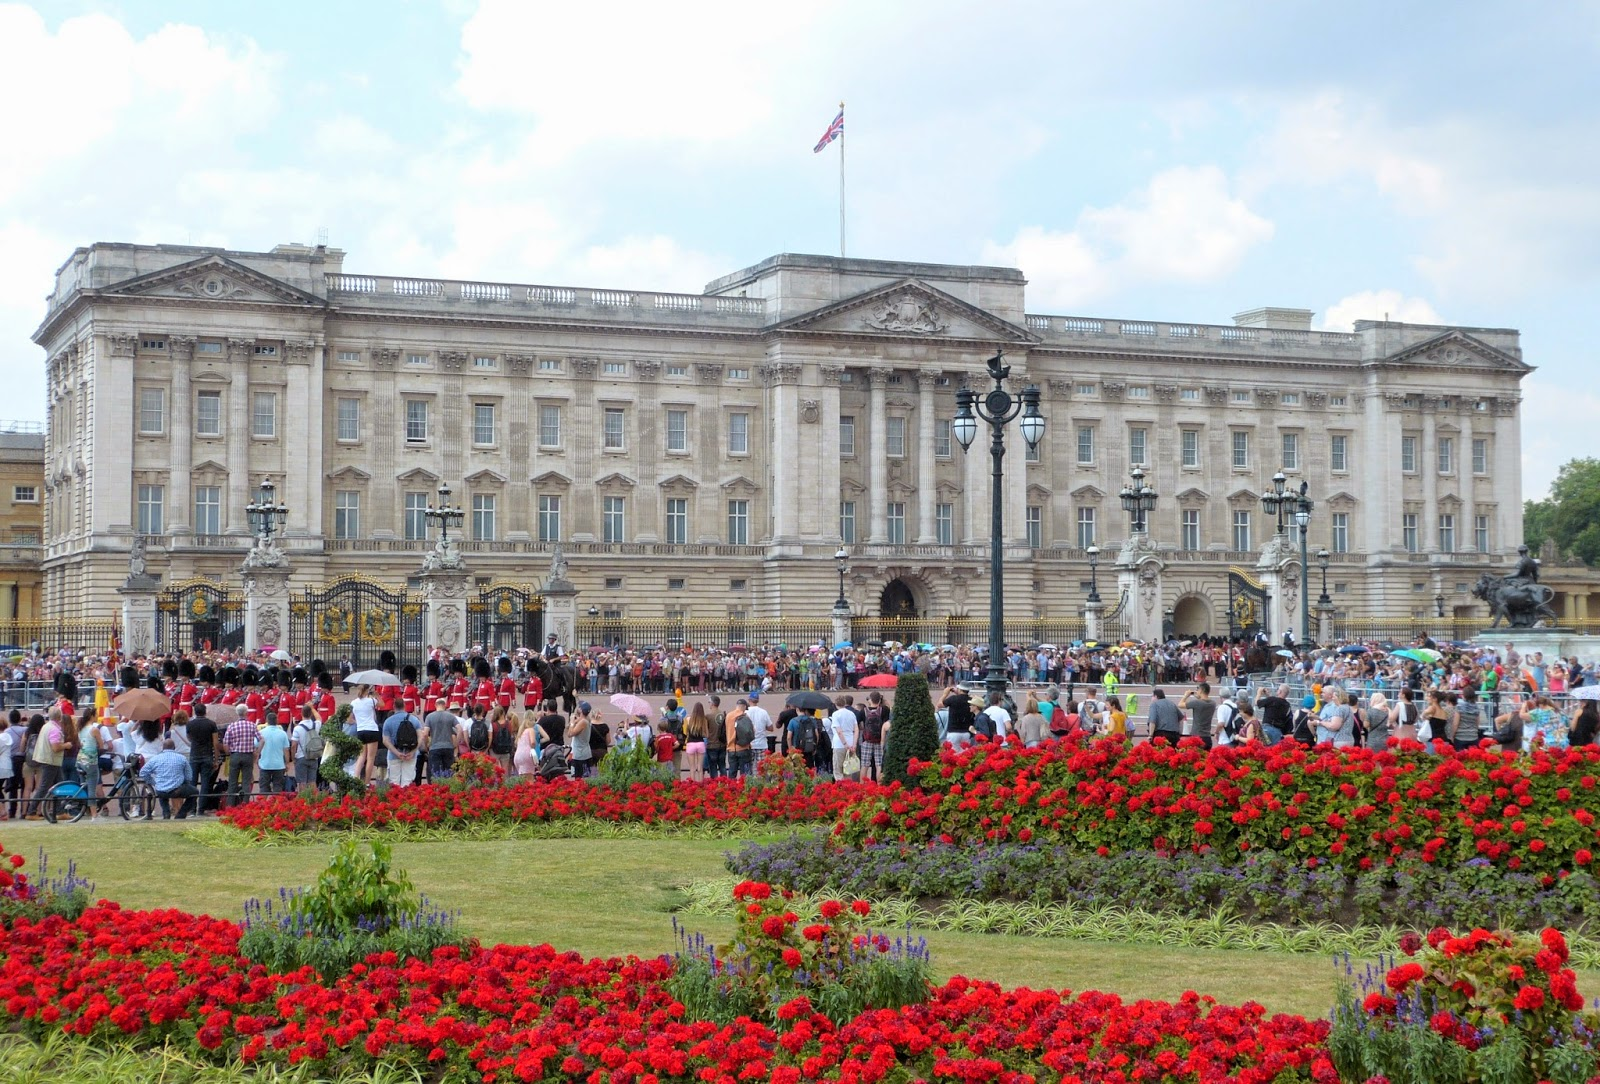 Buckingham Palace 25 July 2014 at changing of the guard